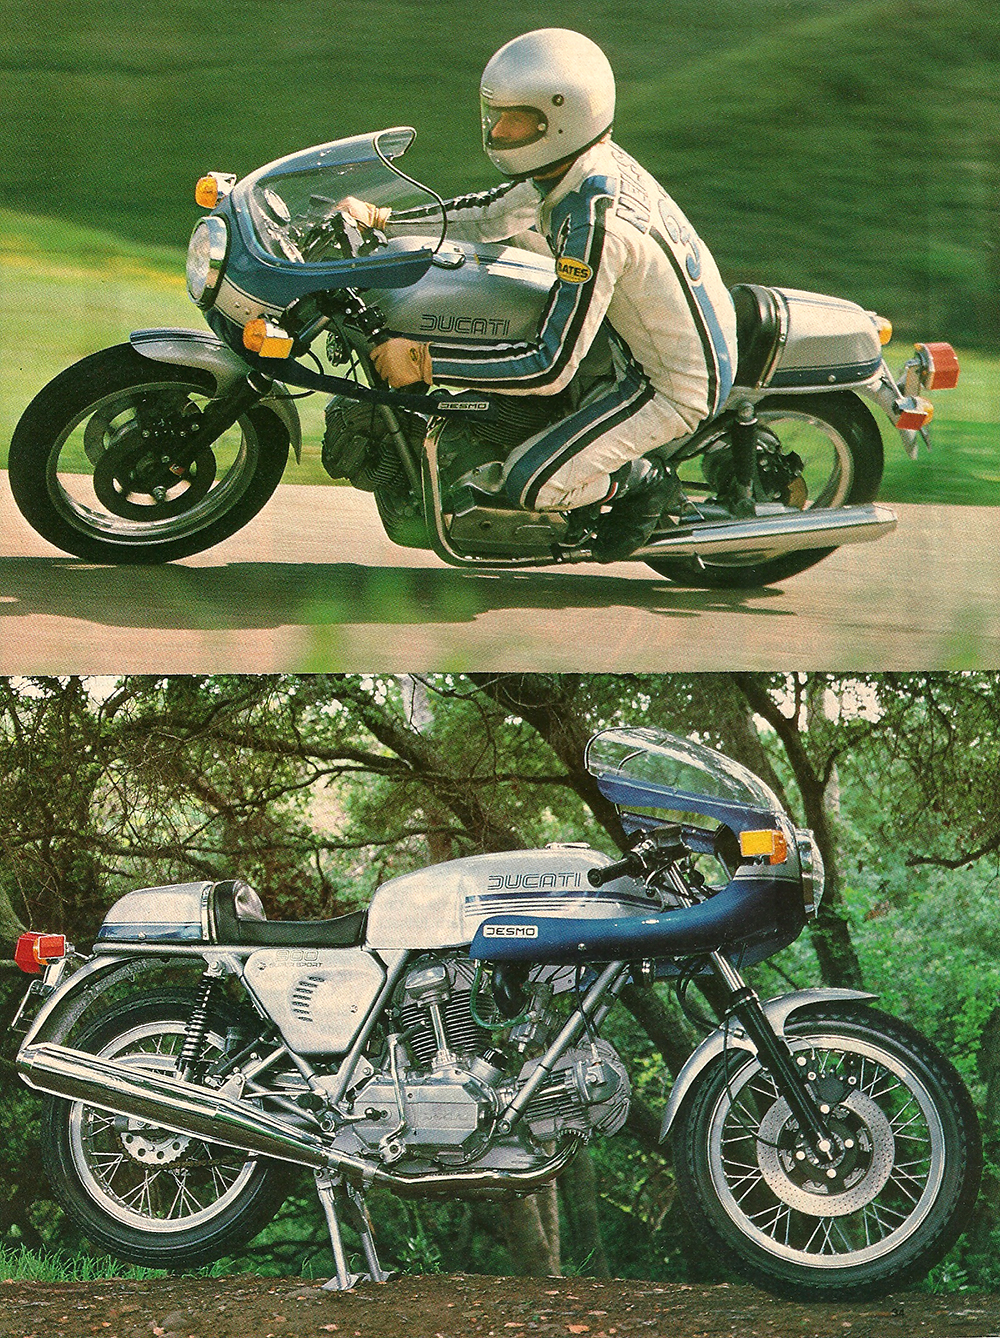 1978 Ducati Desmo 900 Super Sport road test 03.jpg